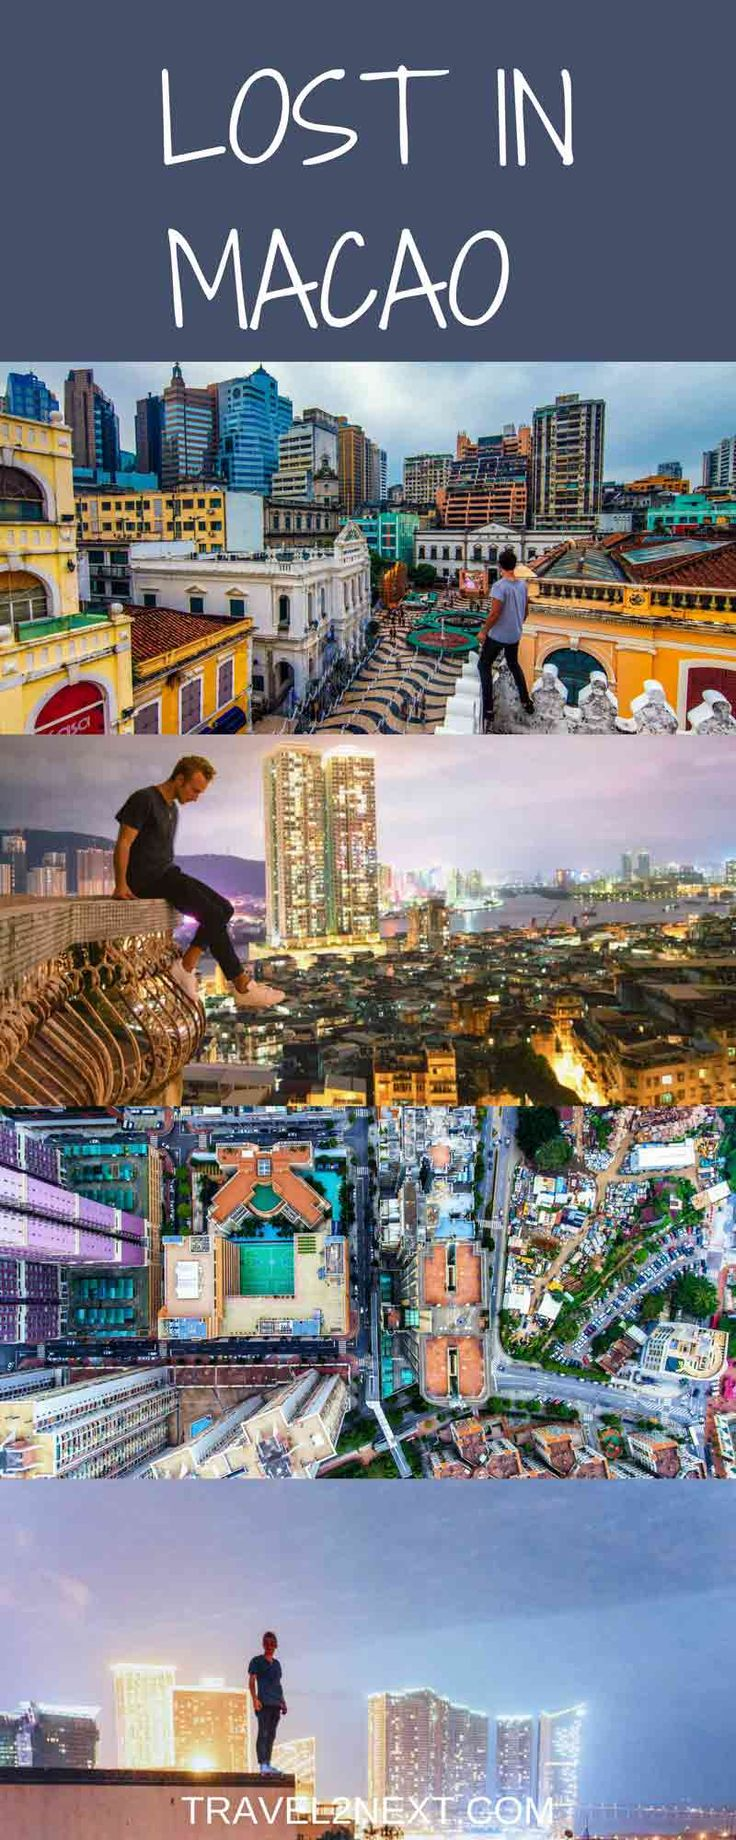 Lost in Macao - Wandering around Macao on foot is one of the best ways of exploring the city.